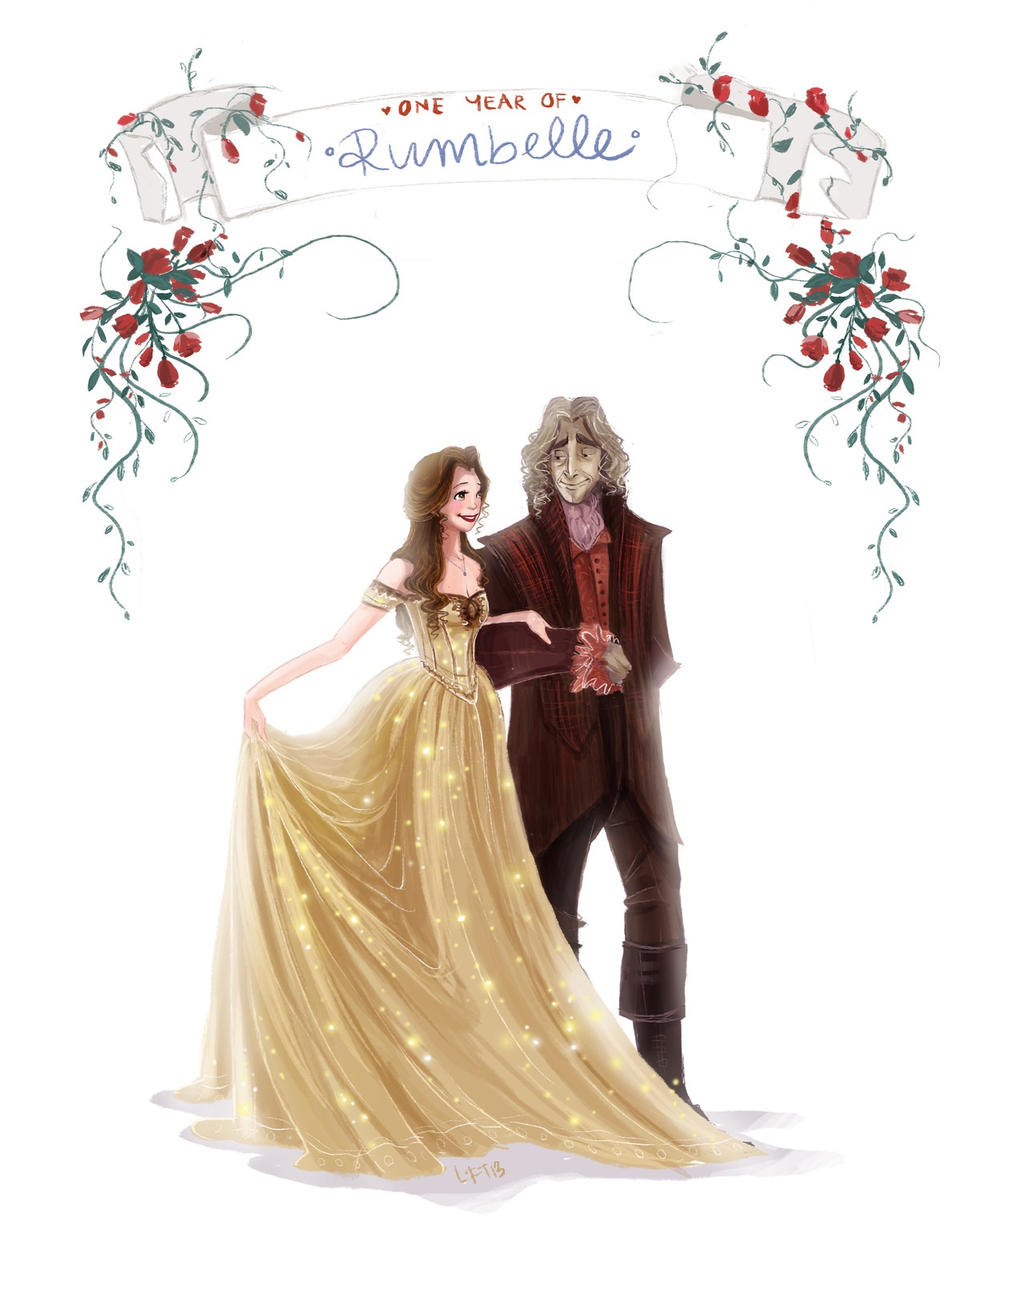 One year of Rumbelle by snoprincess